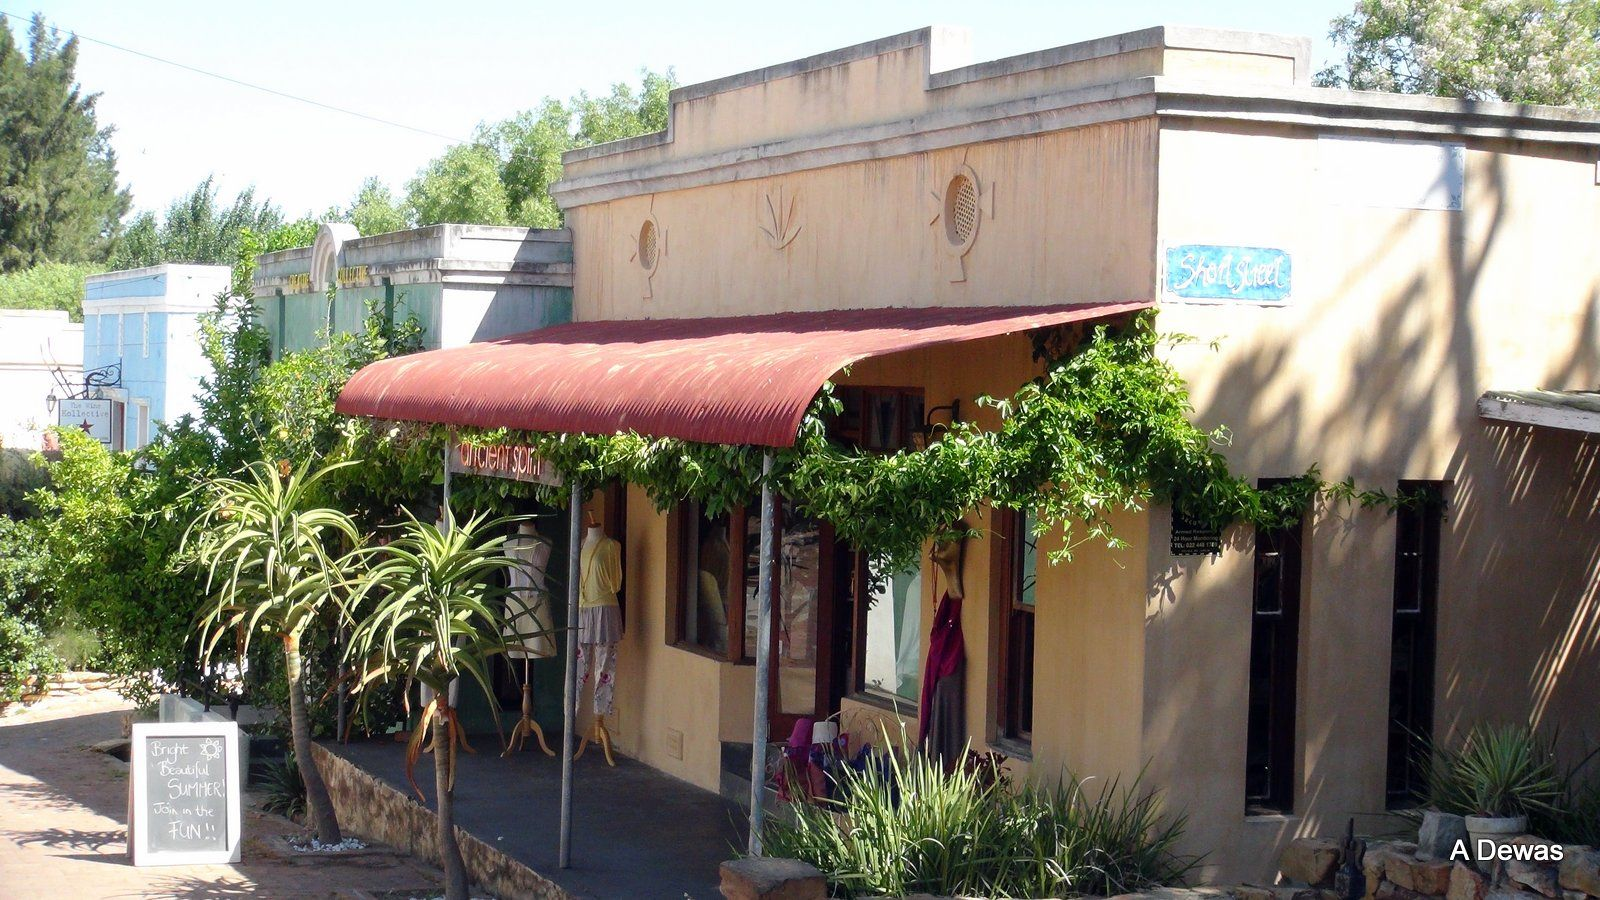 RiebeekKasteel is one of the oldest towns in South Africa